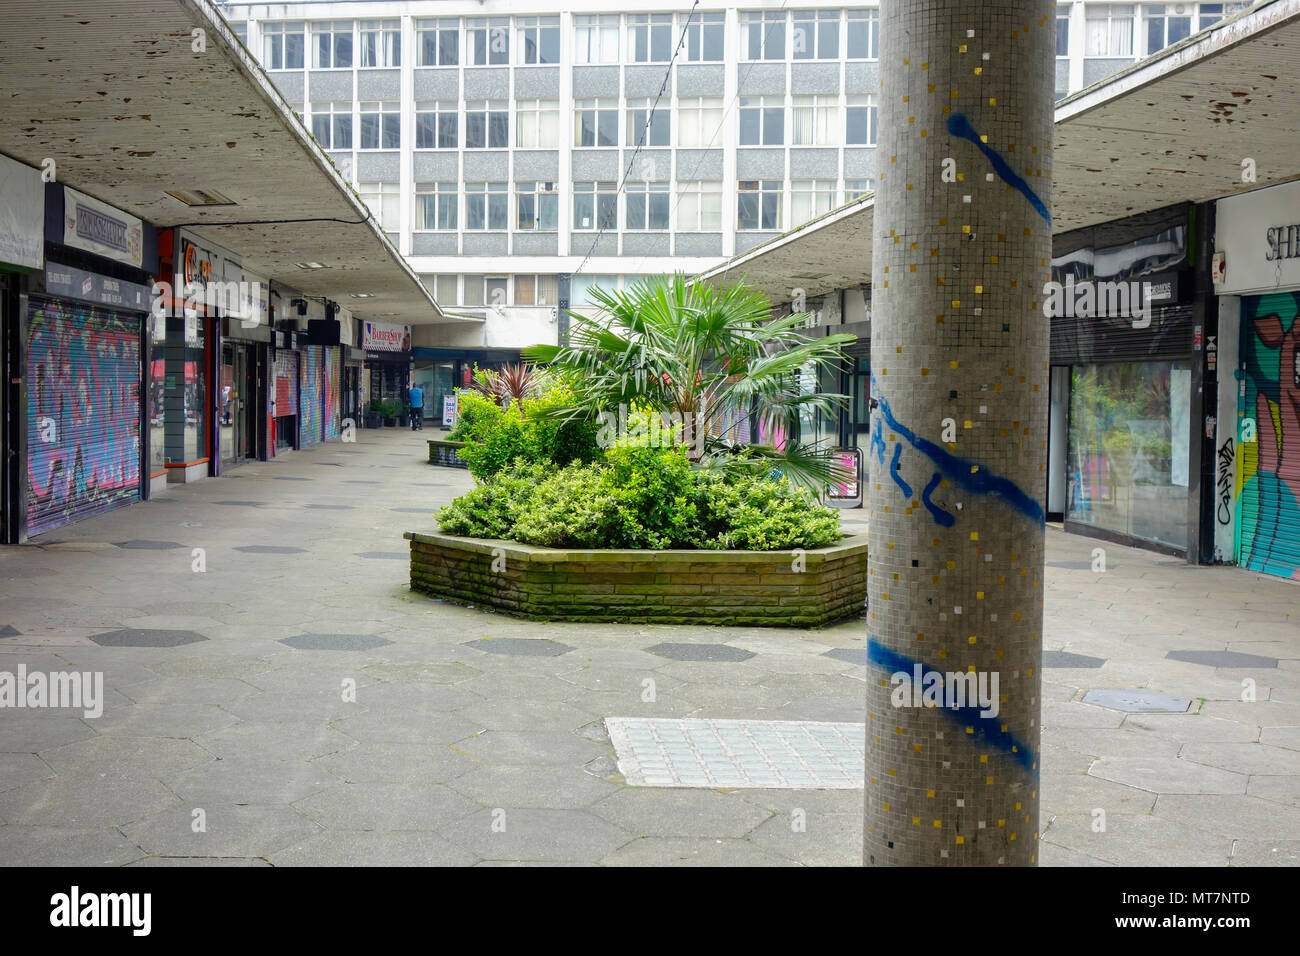 St George's Walk shopping precinct, Croydon, South London. Designed by Ronald Ward and Partners and opened in 1964. - Stock Image